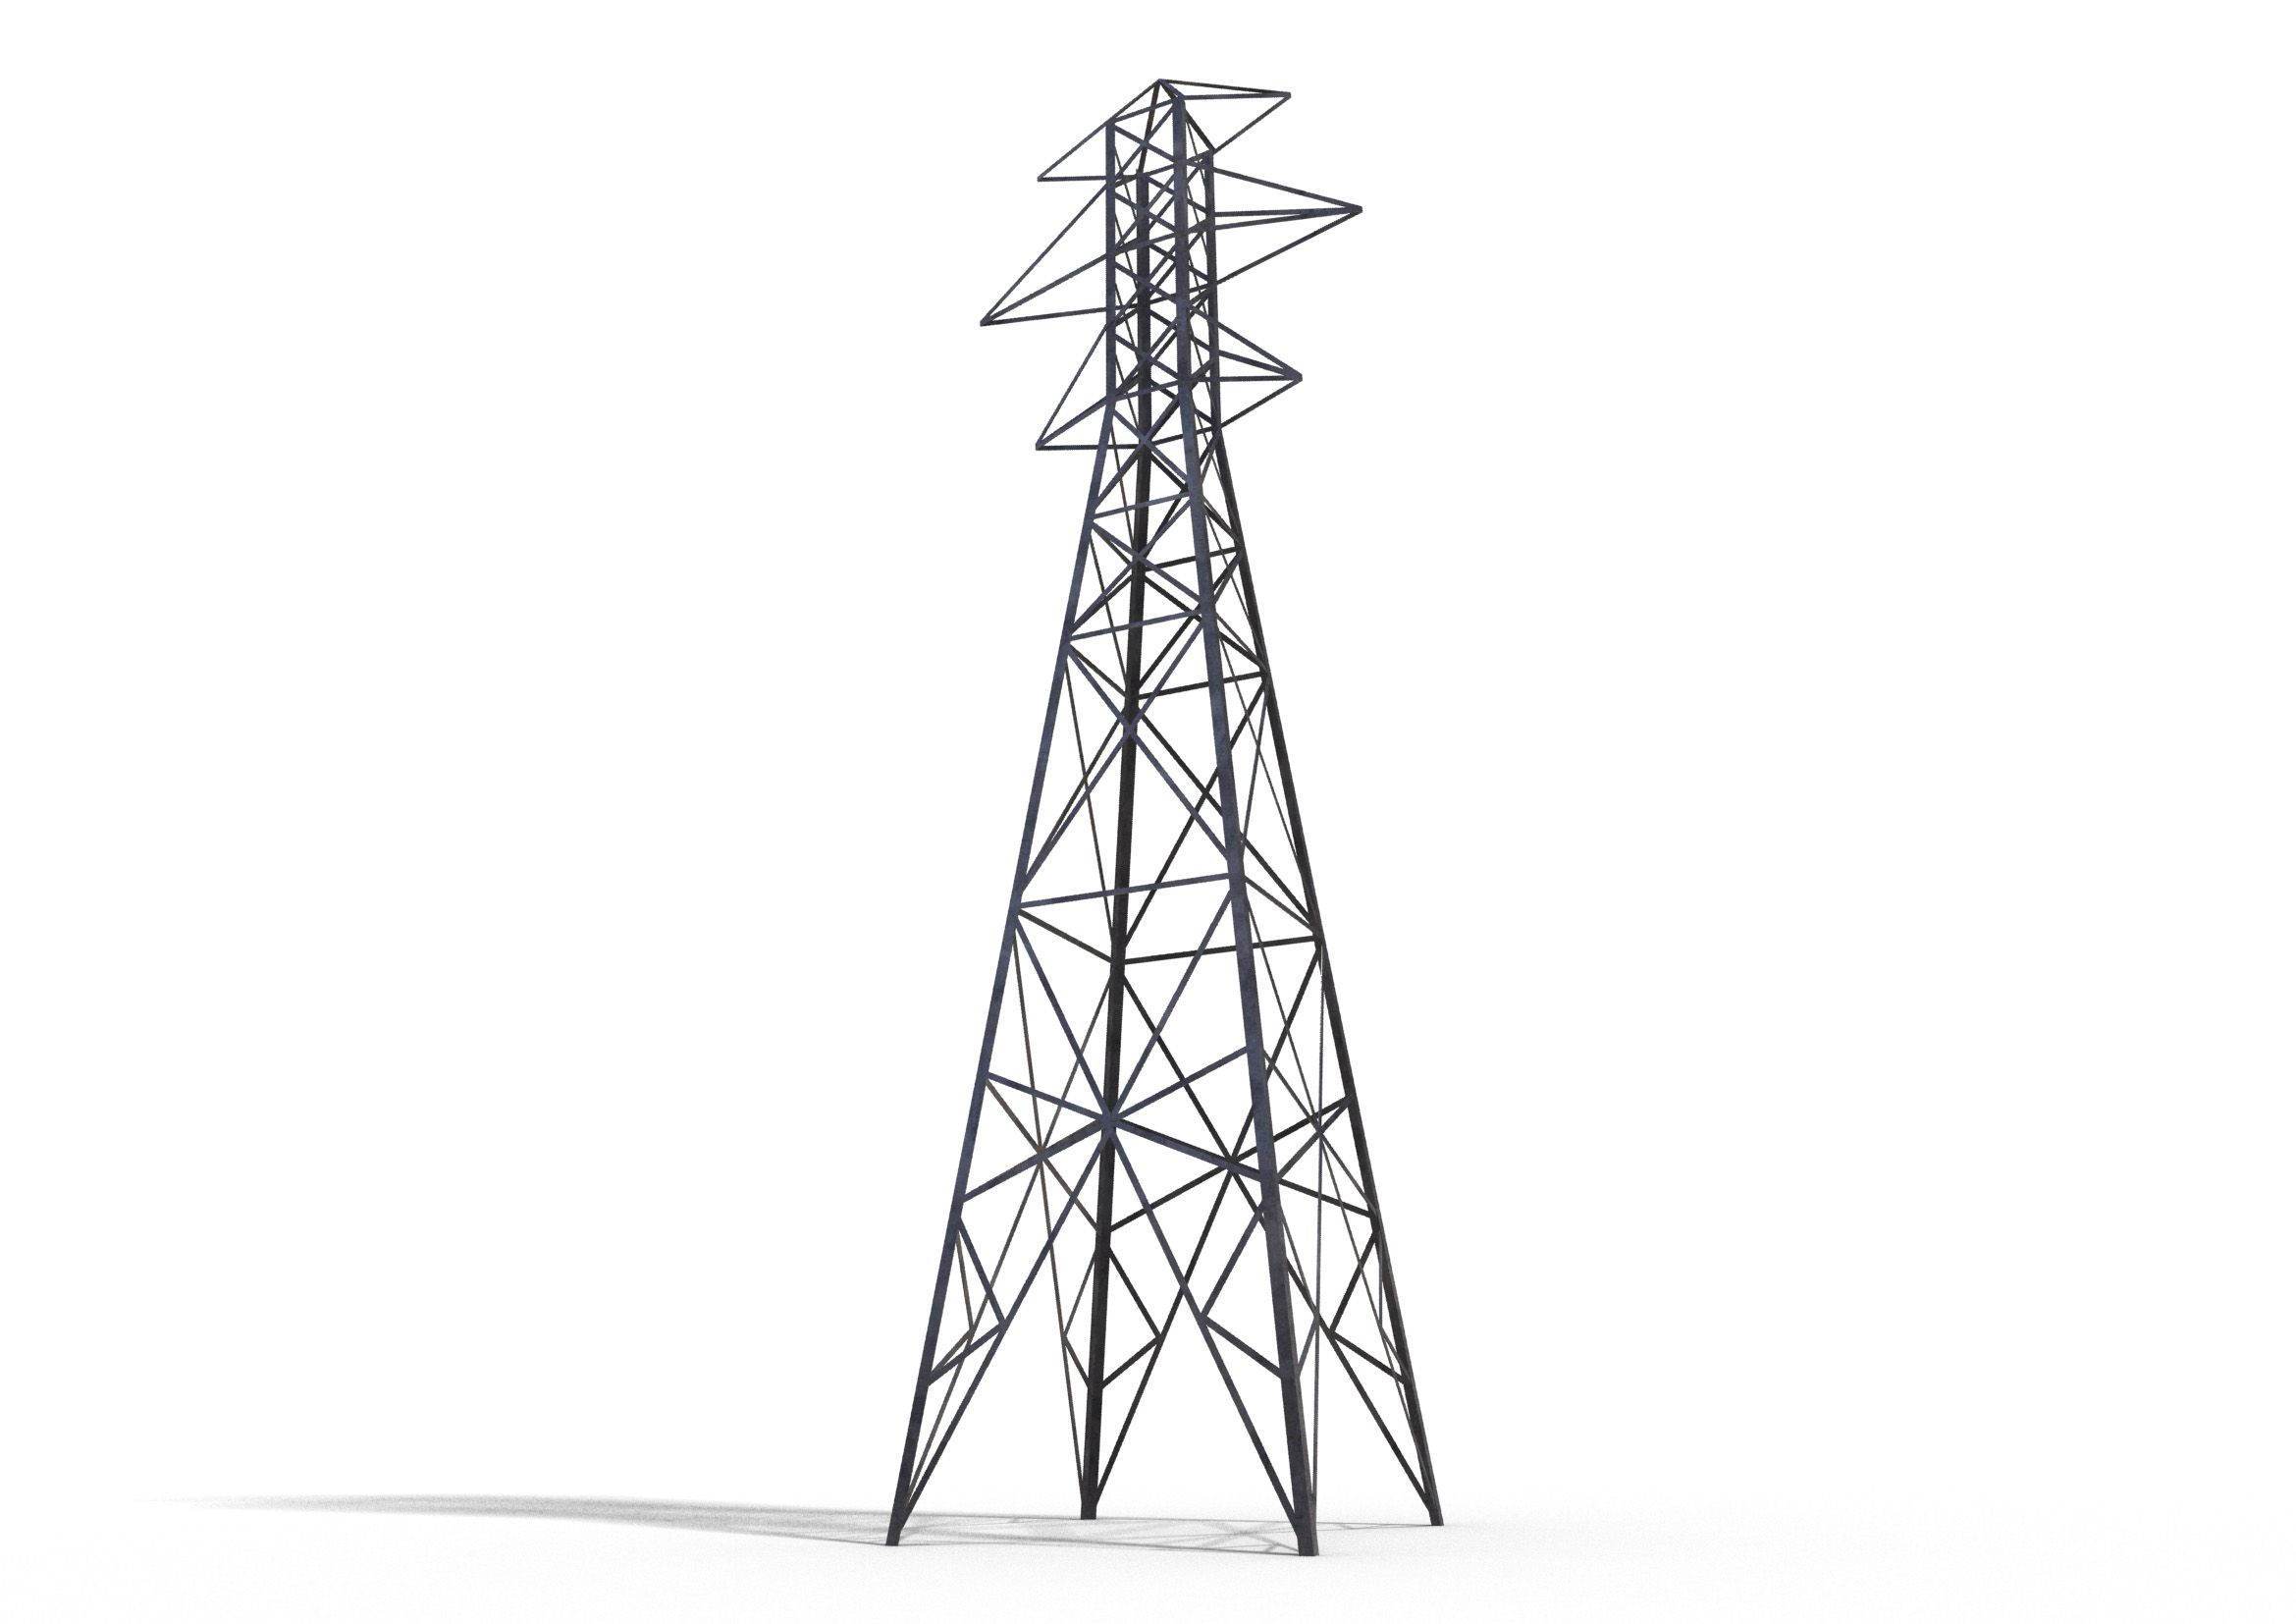 Electrical Tower Drawing